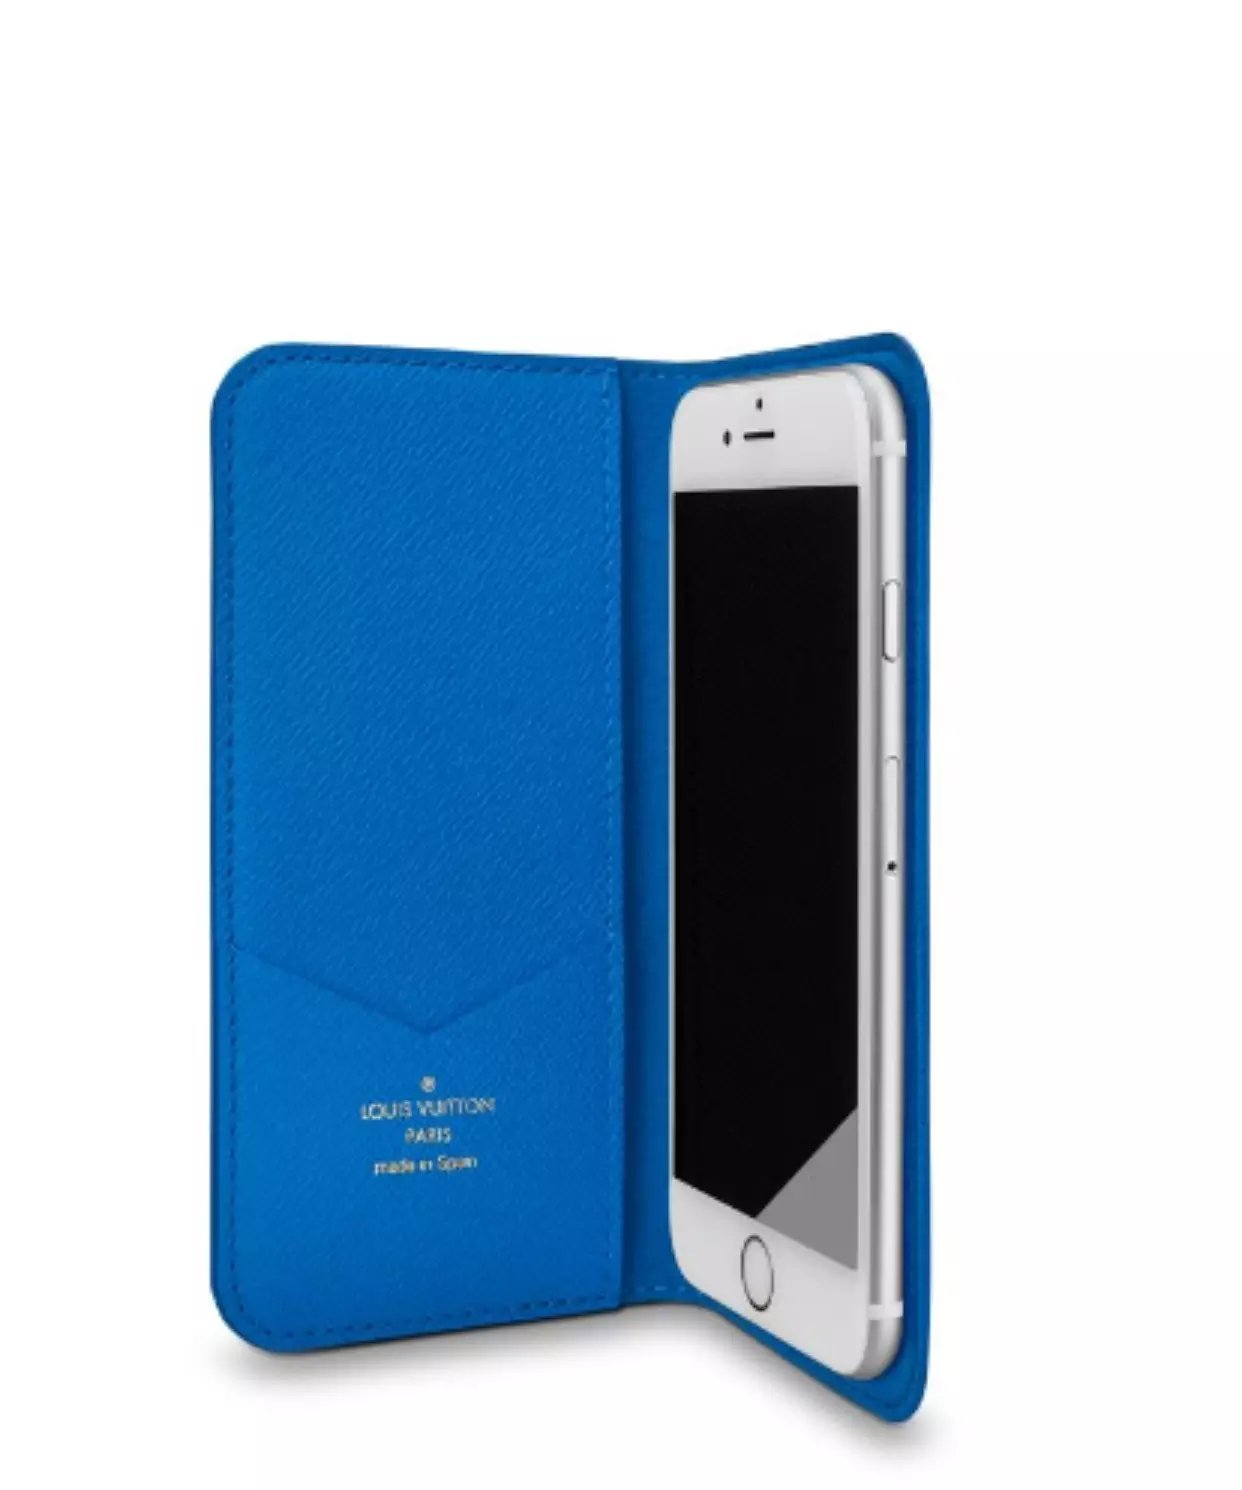 individuelle iphone hülle iphone silikonhülle selbst gestalten Louis Vuitton iphone6 plus hülle antivirenprogramm für iphone designer handyhüllen iphone 6 Plus apple iphone tasche silikon schutzhülle iphone zeigt keine bilder an eigene handyhülle machen